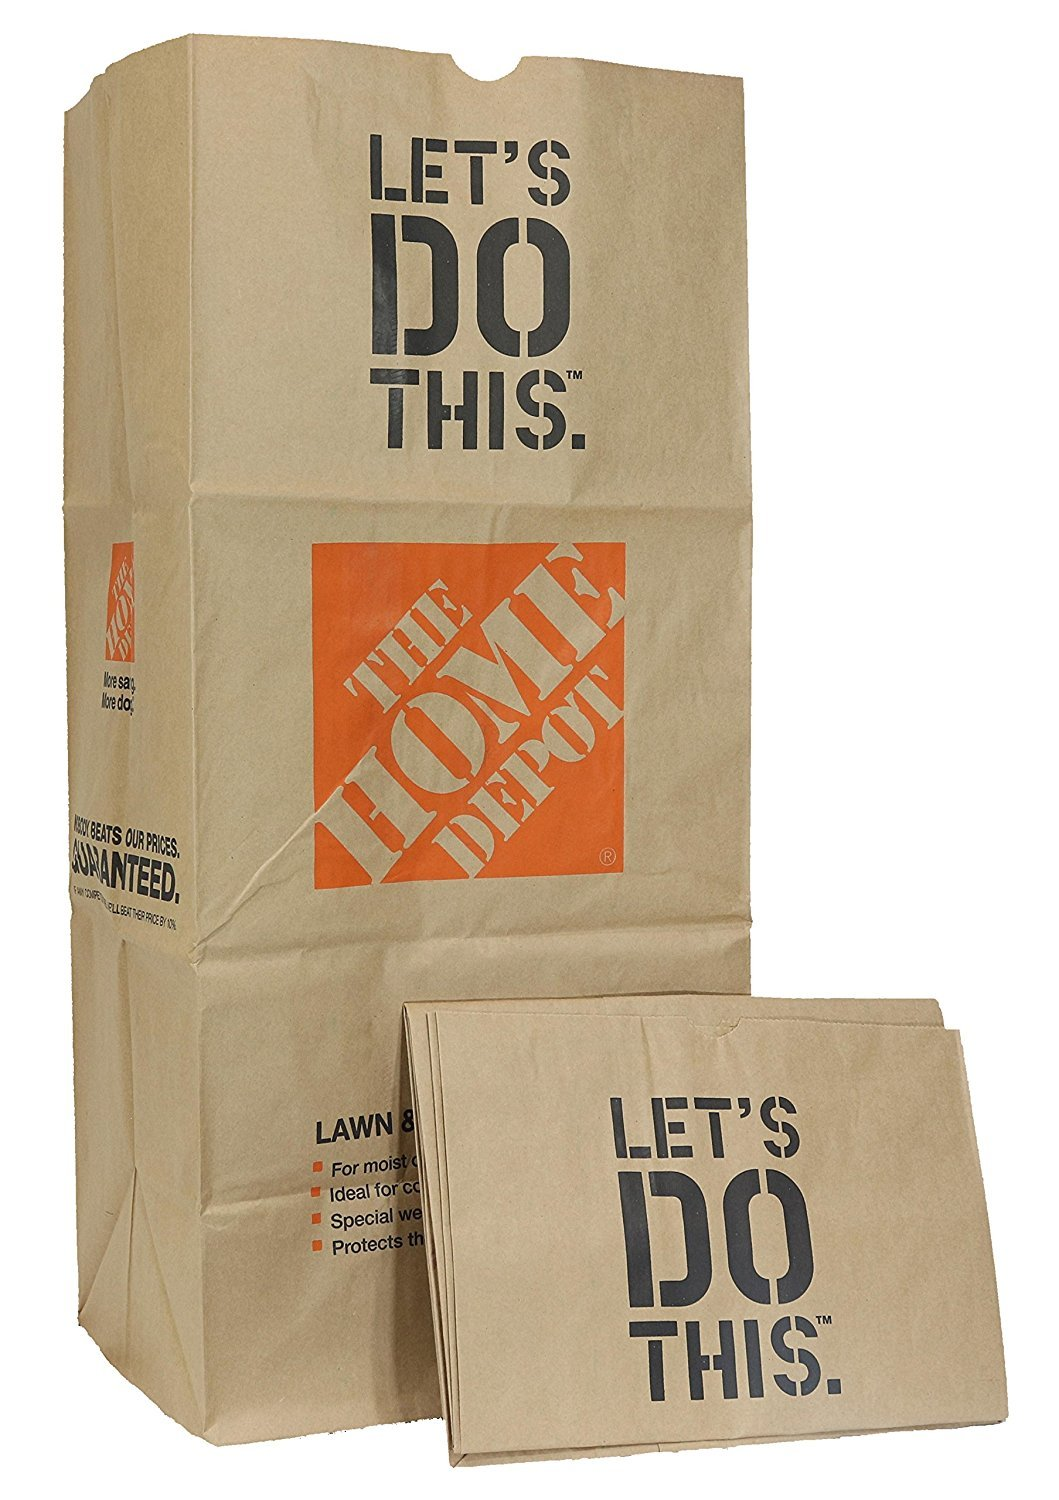 The Home Depot 49022-25PK Heavy Duty Brown Paper Lawn and Refuse Bags for Home and Garden, 30 gal (Pack of 25) by The home depot